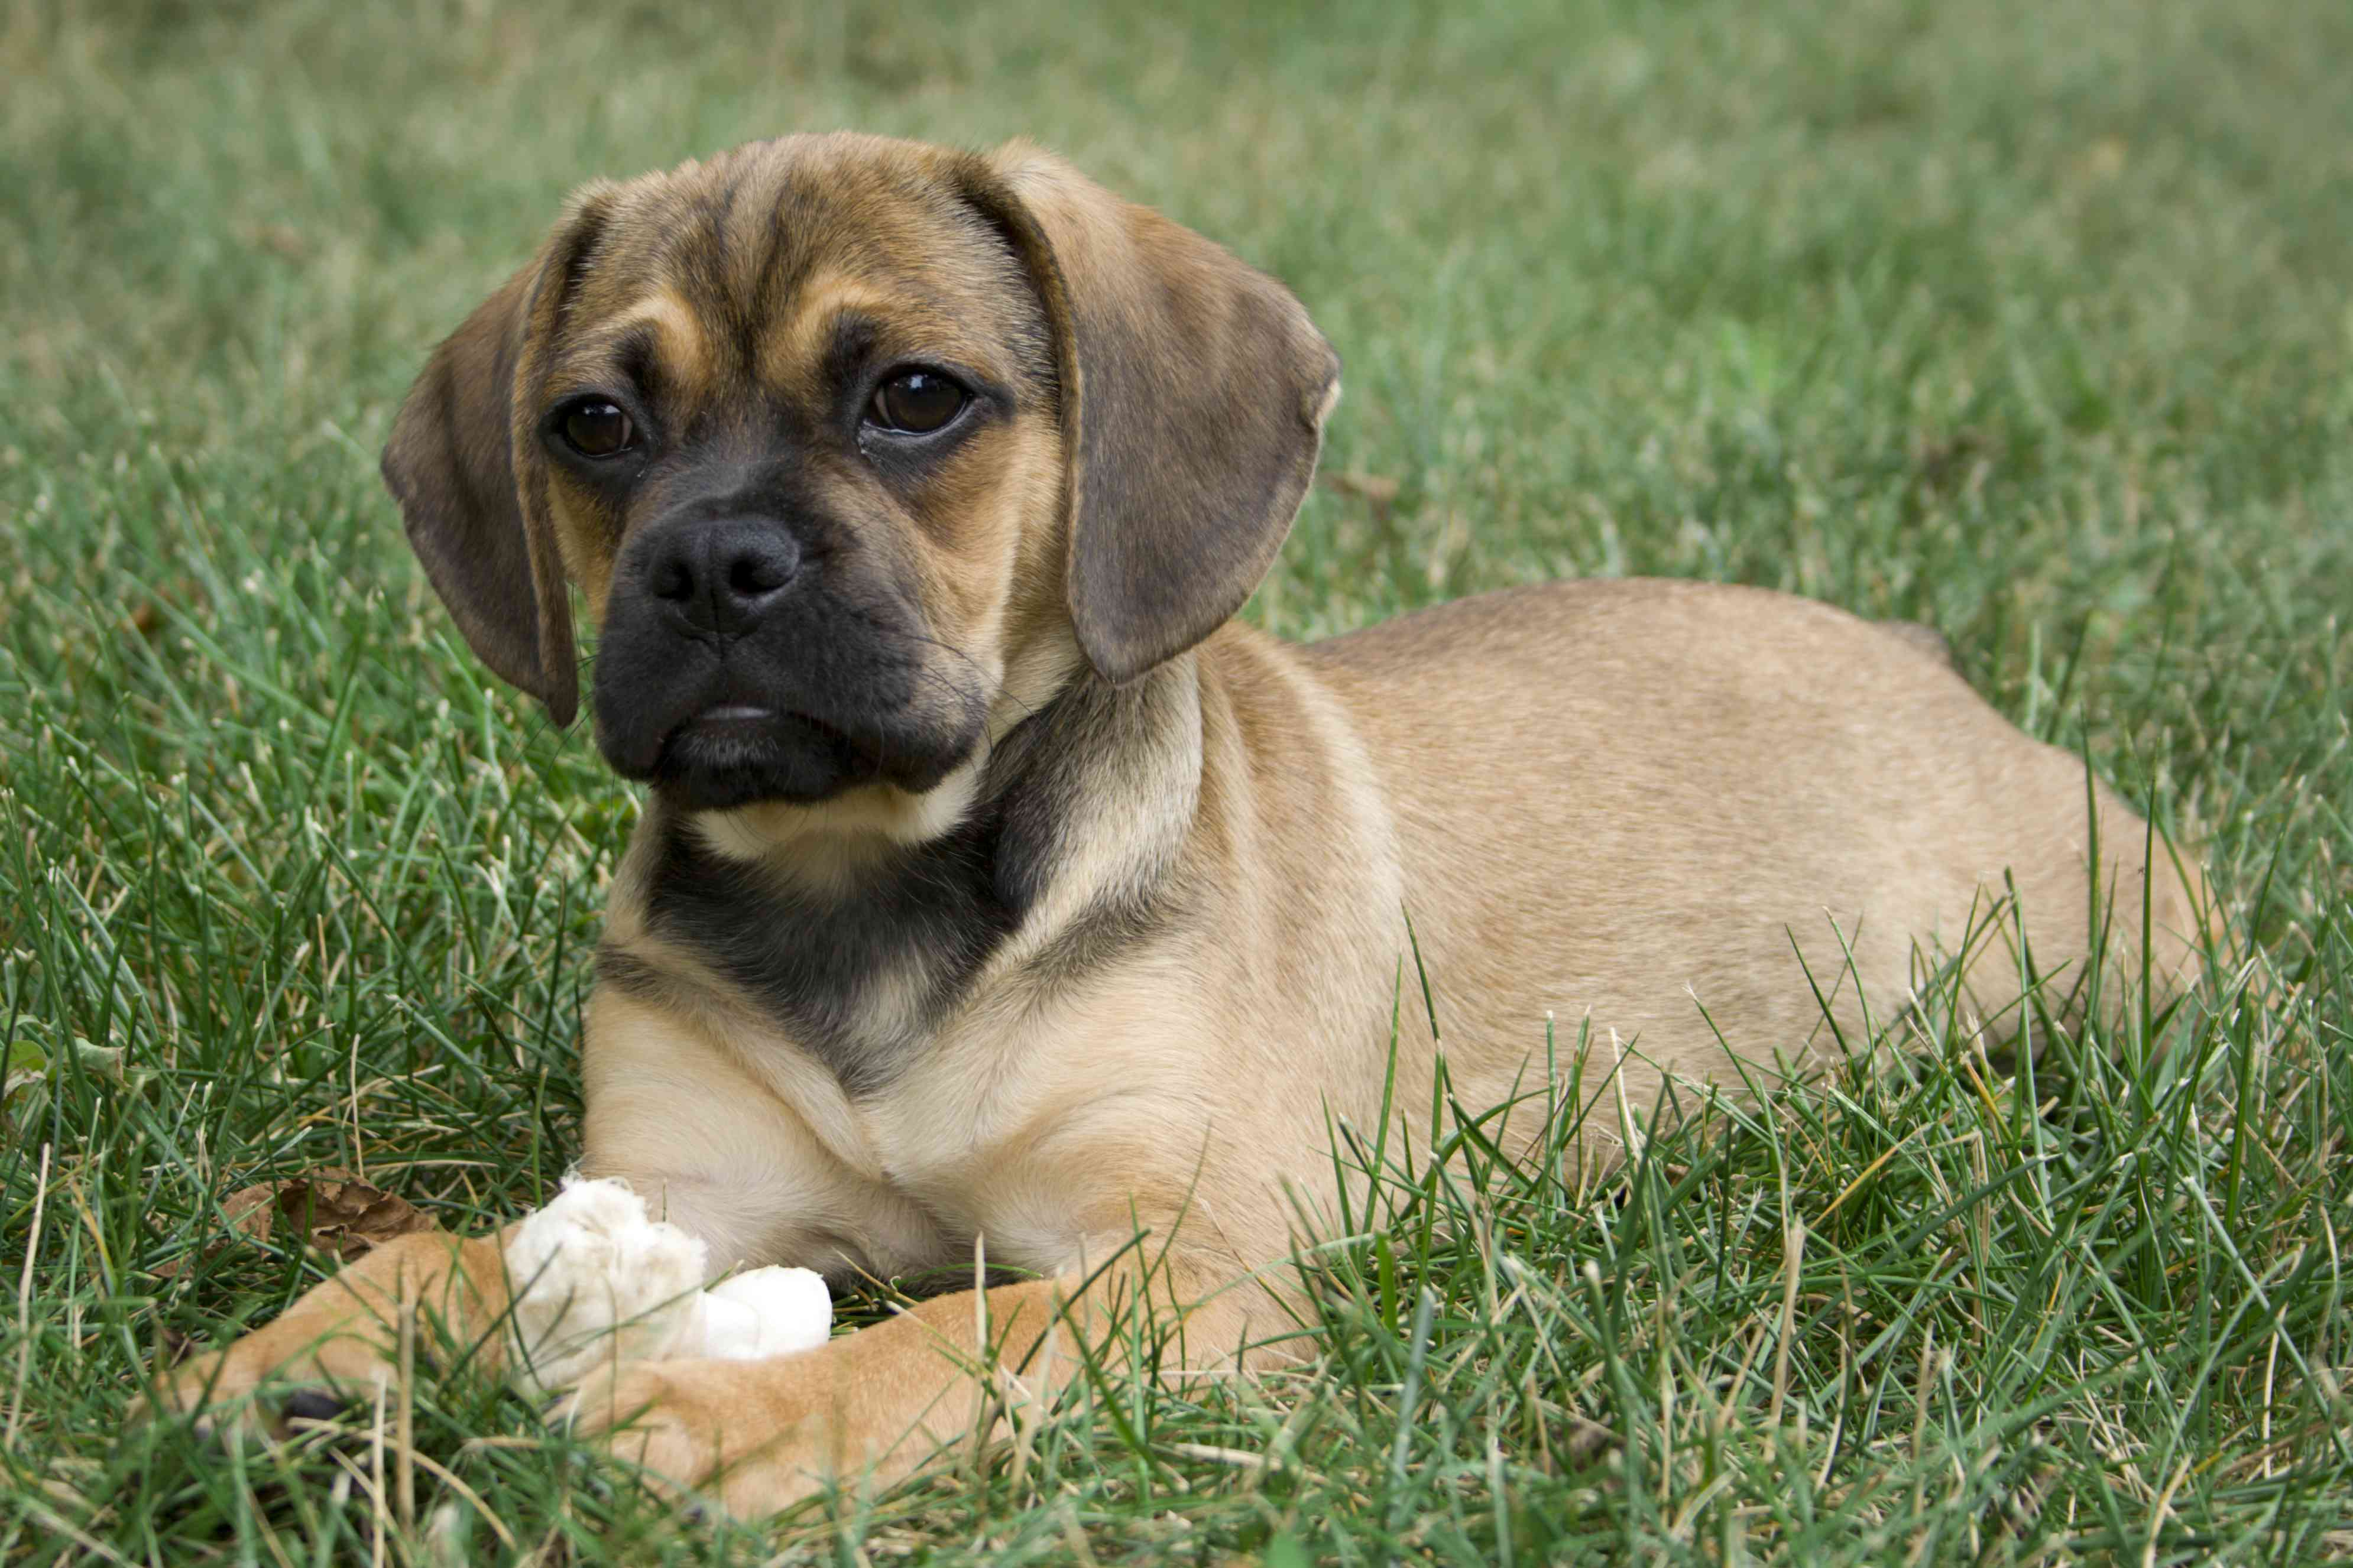 Puggle dog lying in grass with toy